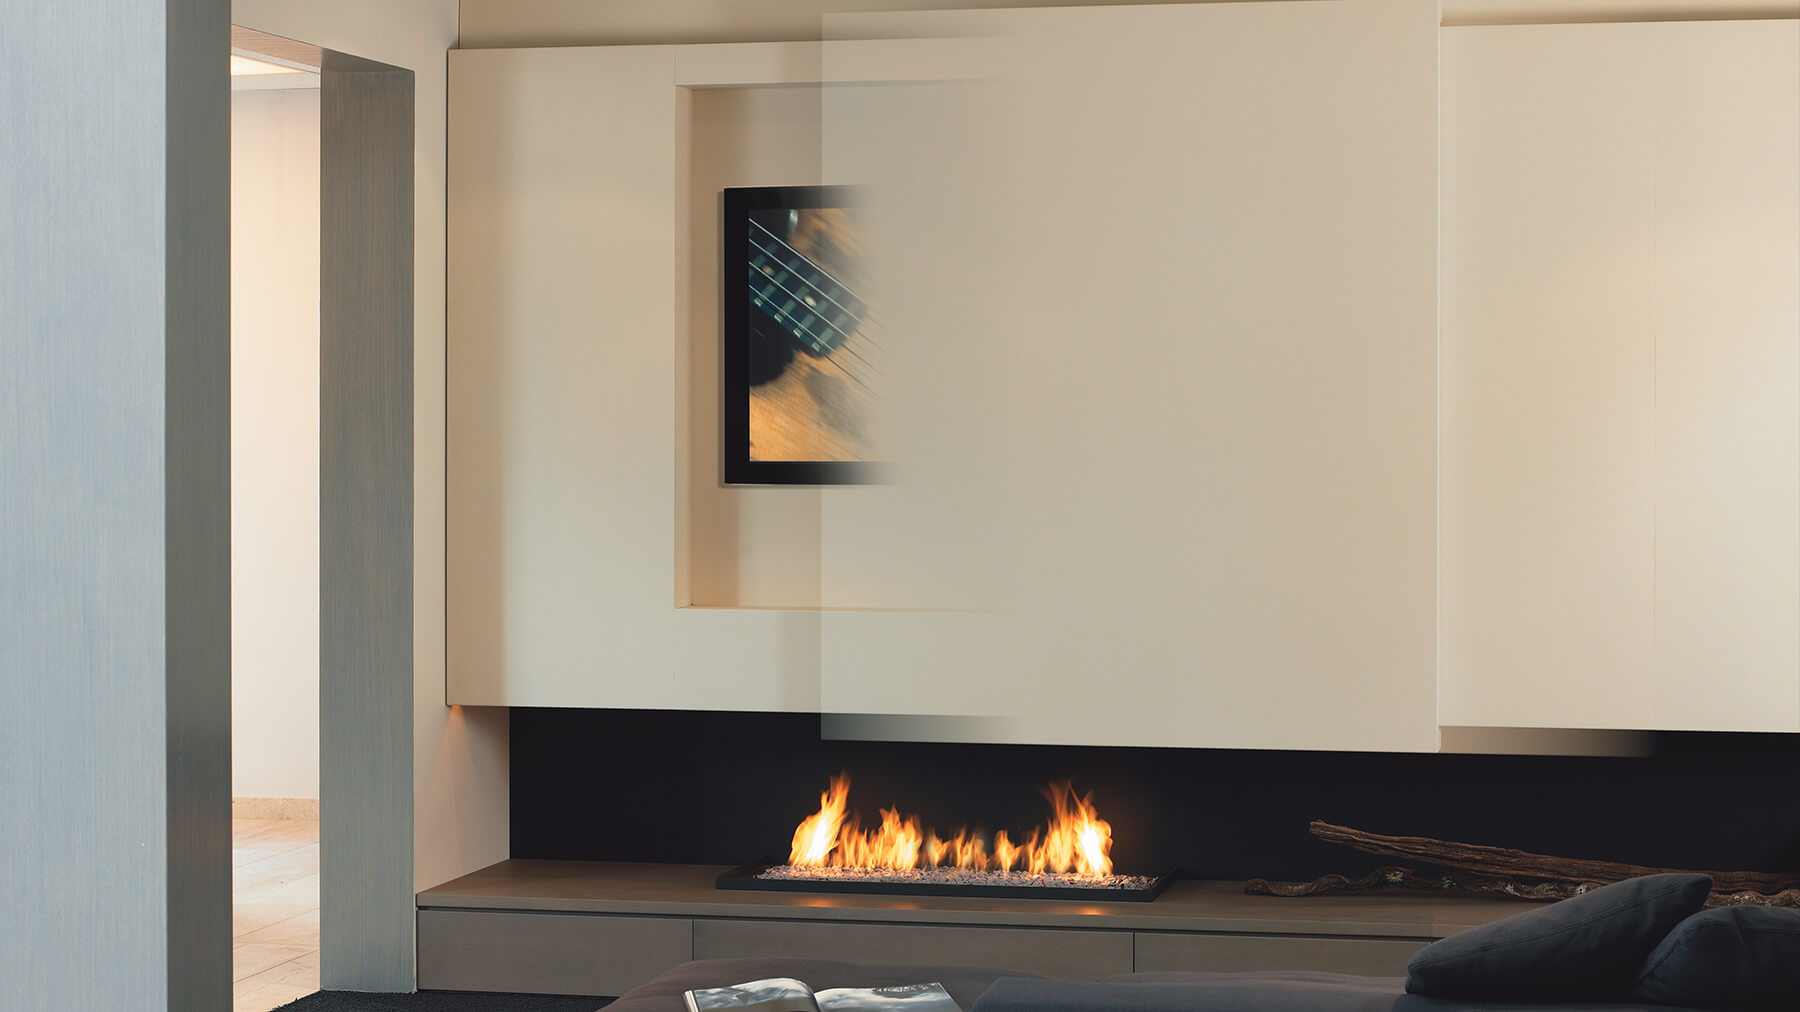 Bespoke Fireplaces I Tv Above Fireplace I Designer Fireplace